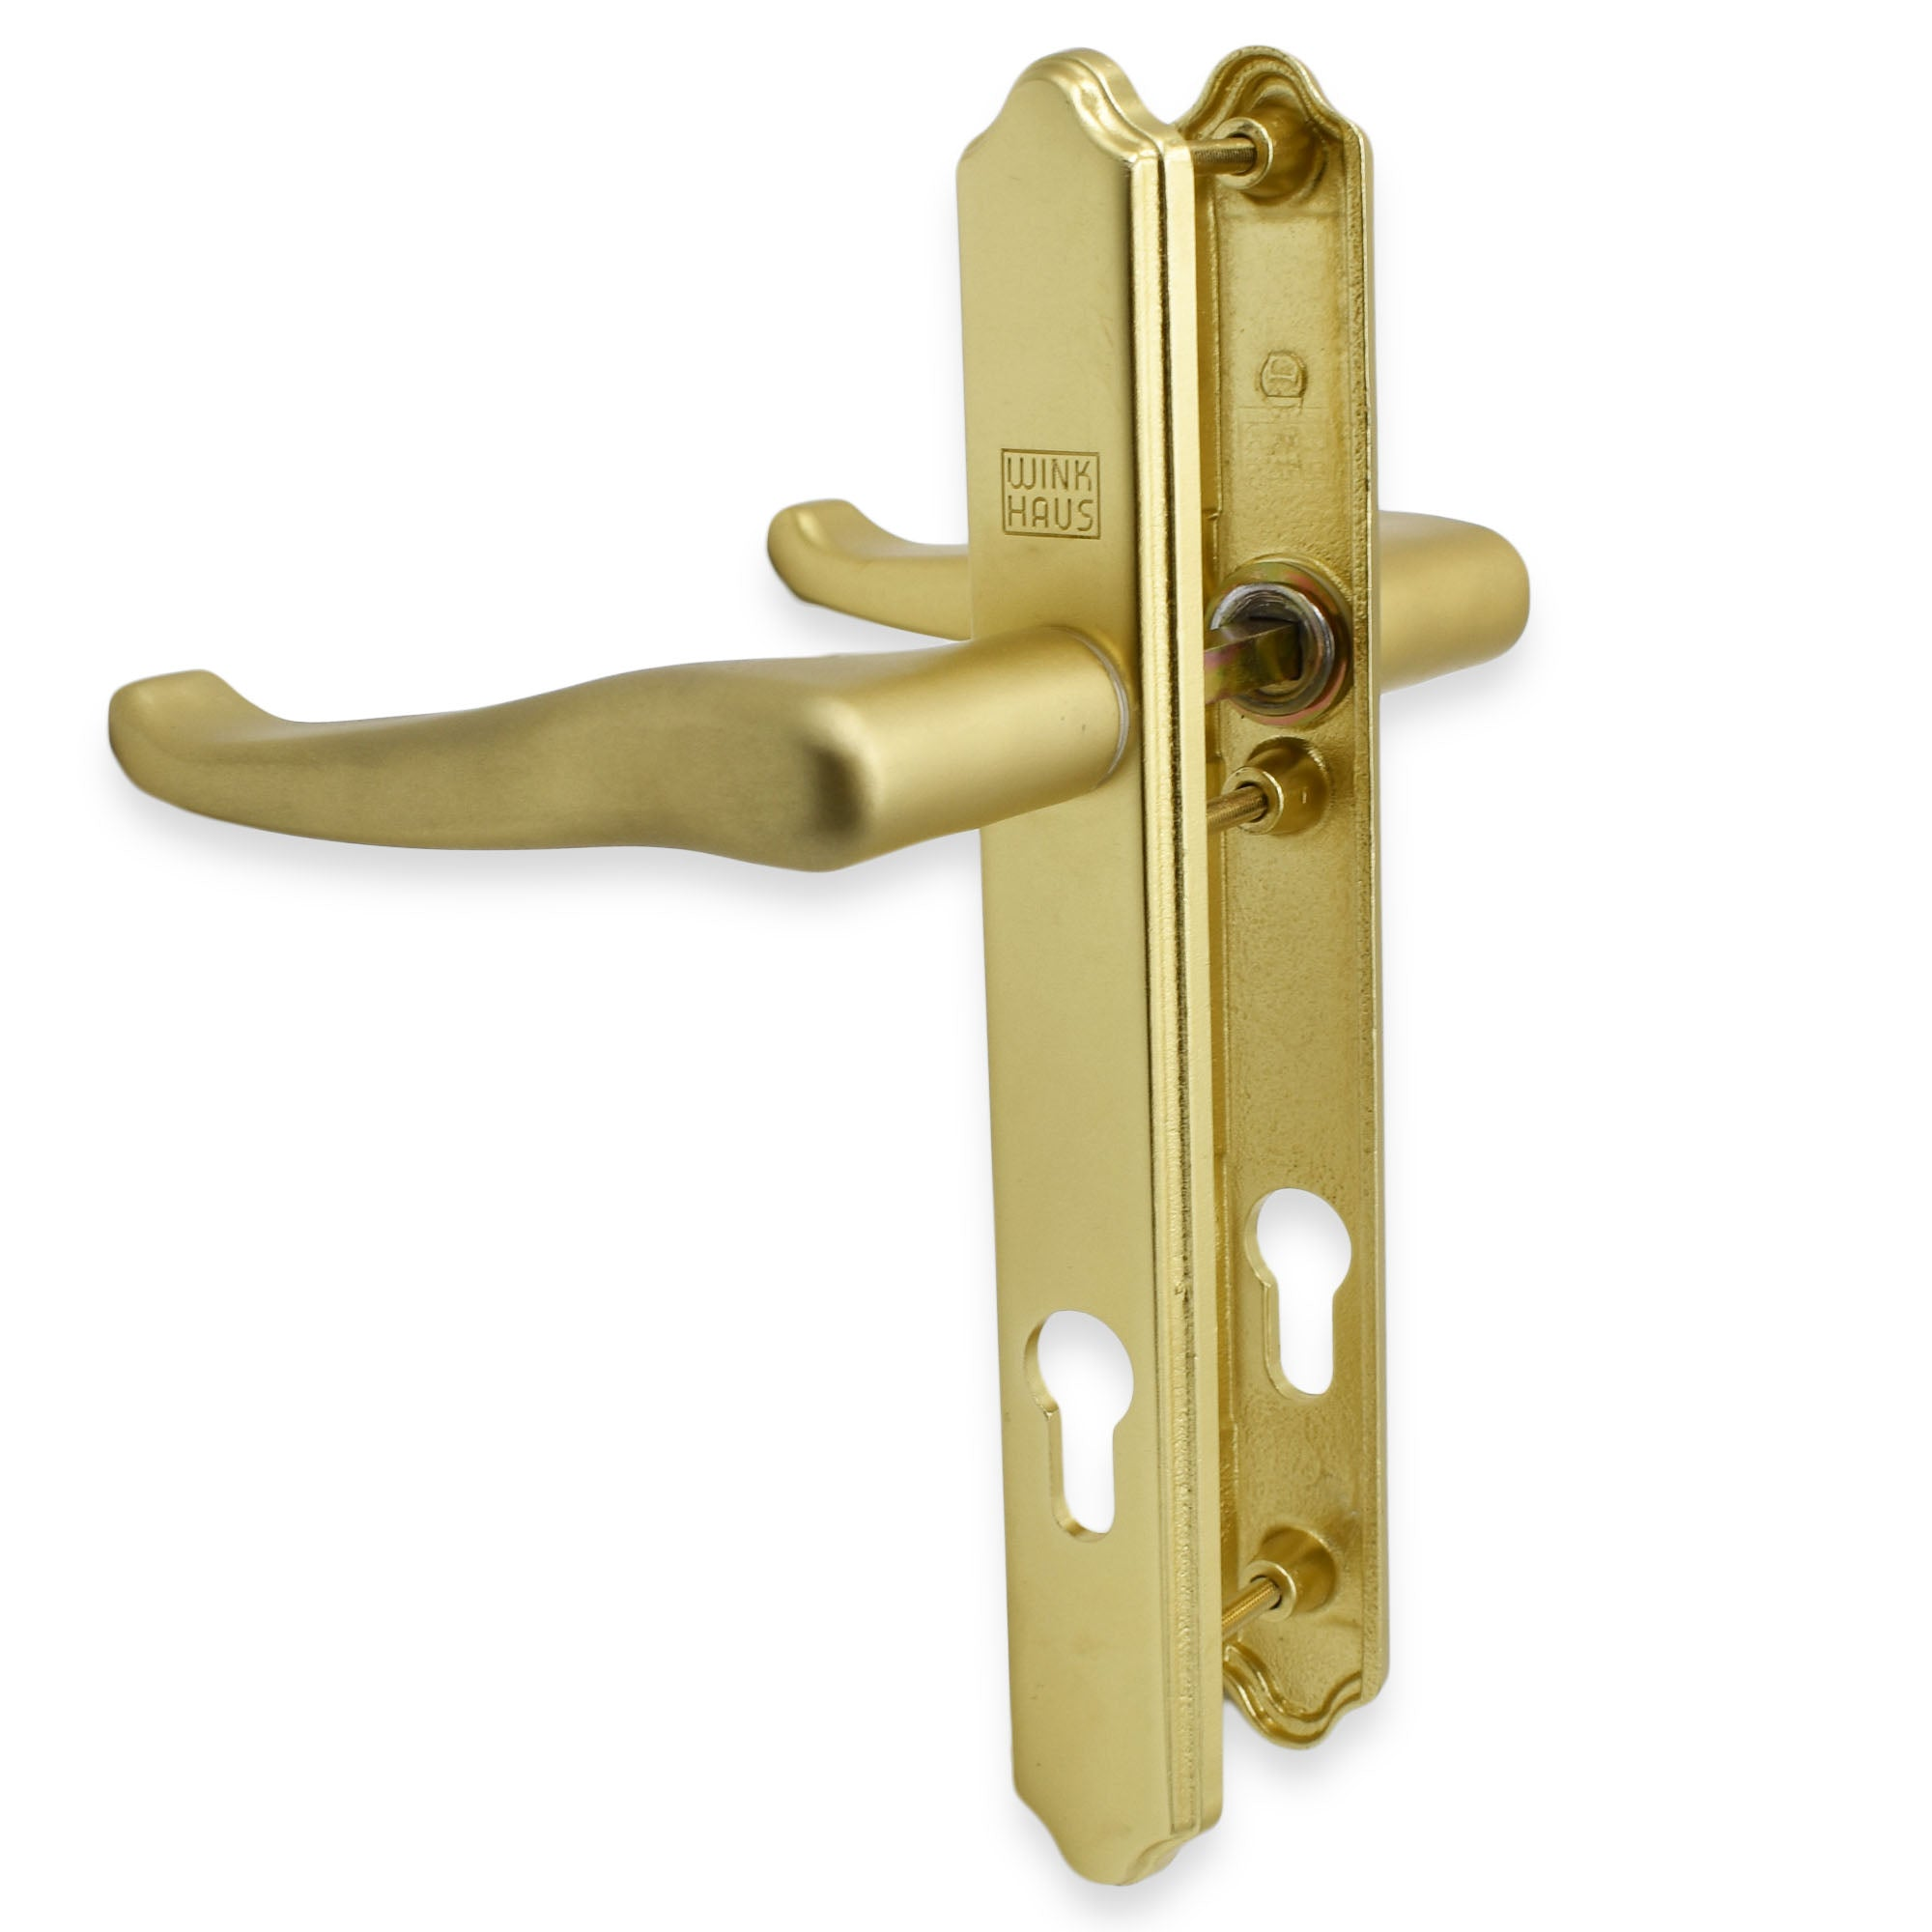 Winkhaus Palladio 3 Screw Hole Upvc Composite Door Handle - Lever Lever in gold -  - Winkhaus - UPVCSTORE